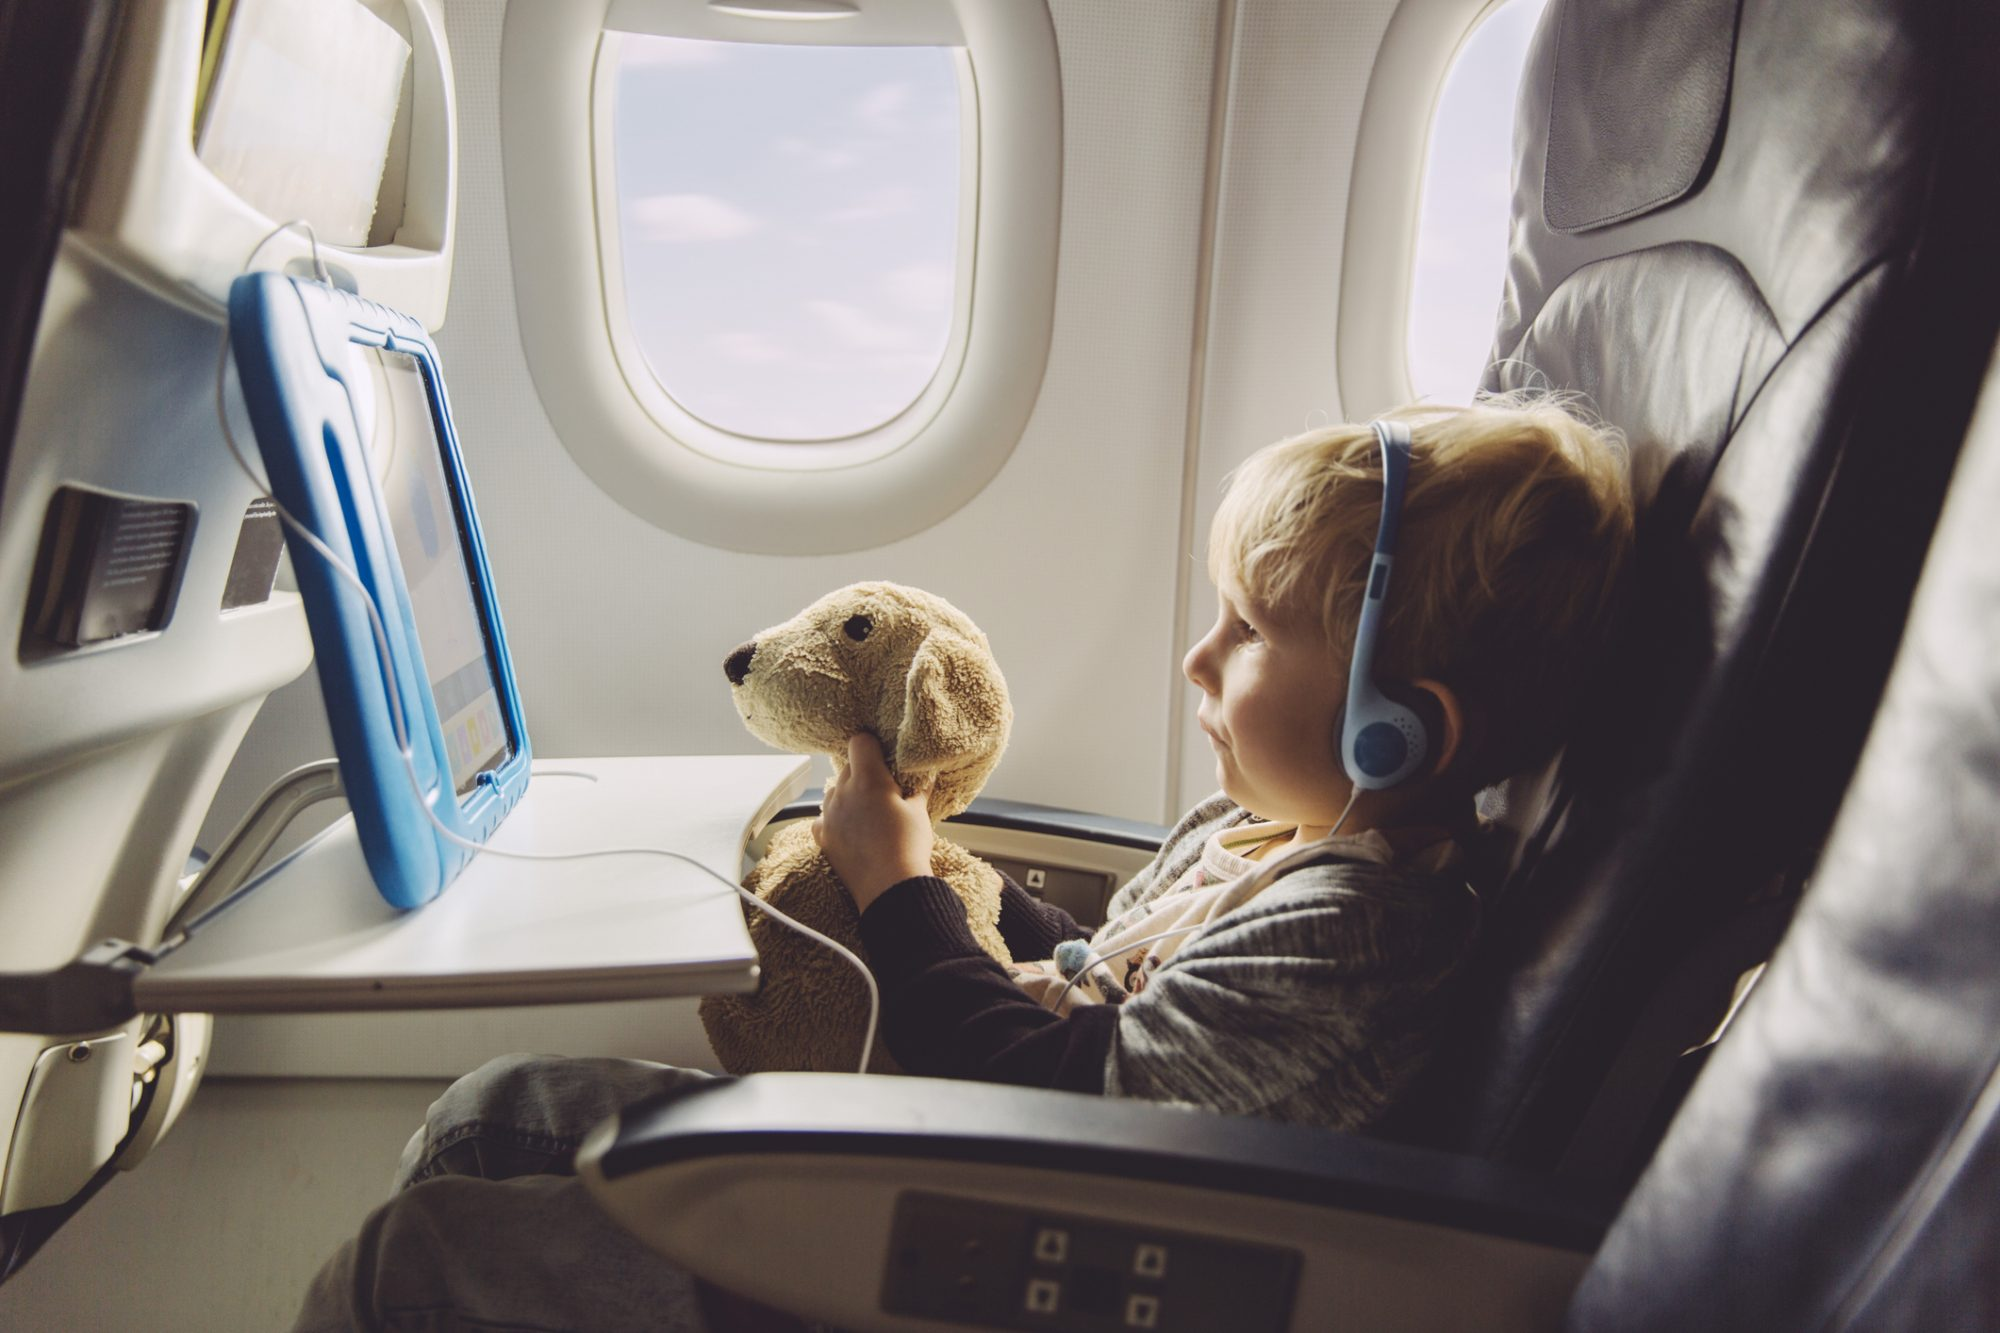 Little boy sitting on an airplane wearing headphones watching something on digital tablet